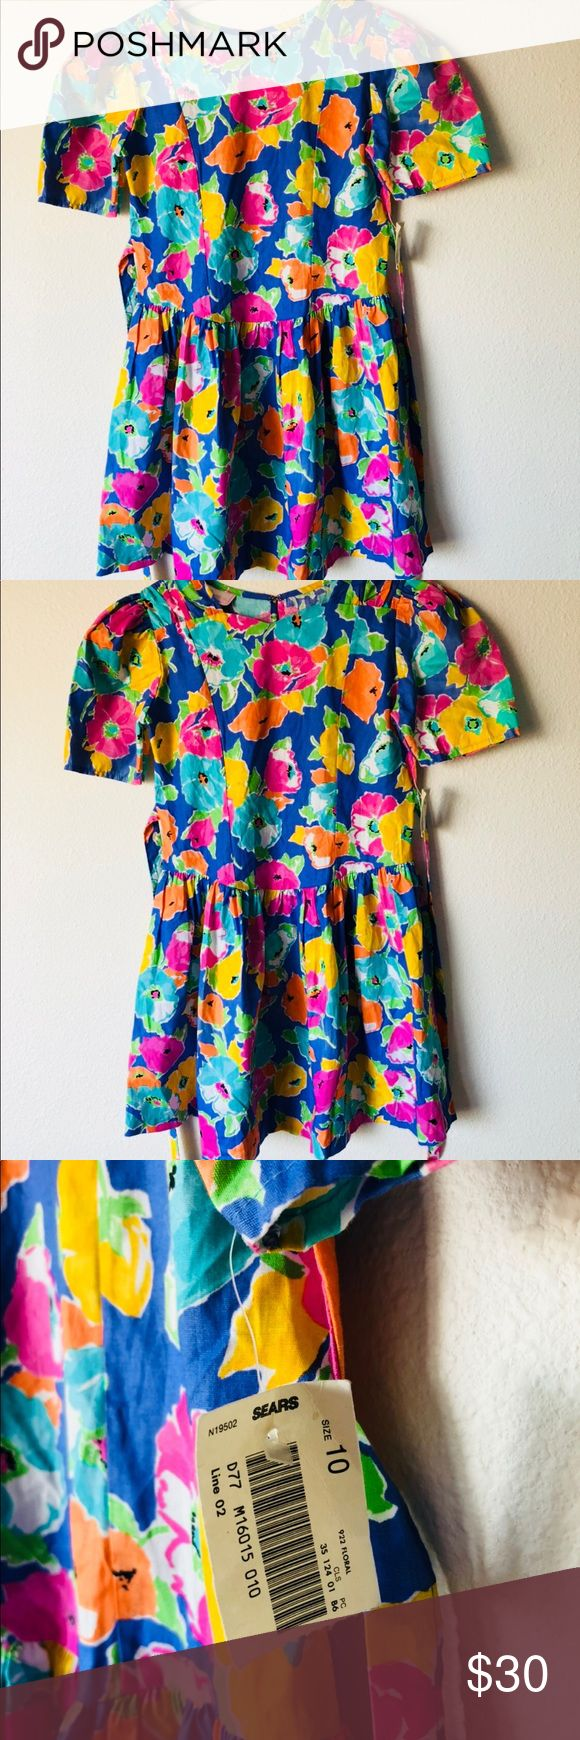 Vintage 90s Sears Picture perfect girls dress 10 Beautiful   Vintage Deadstock   New with tags  90s   Bold cotton dress  Puffy shoulders  Bright neon colors  Made in USA   Size 10 Authentic Original Vintage Style Dresses Casual